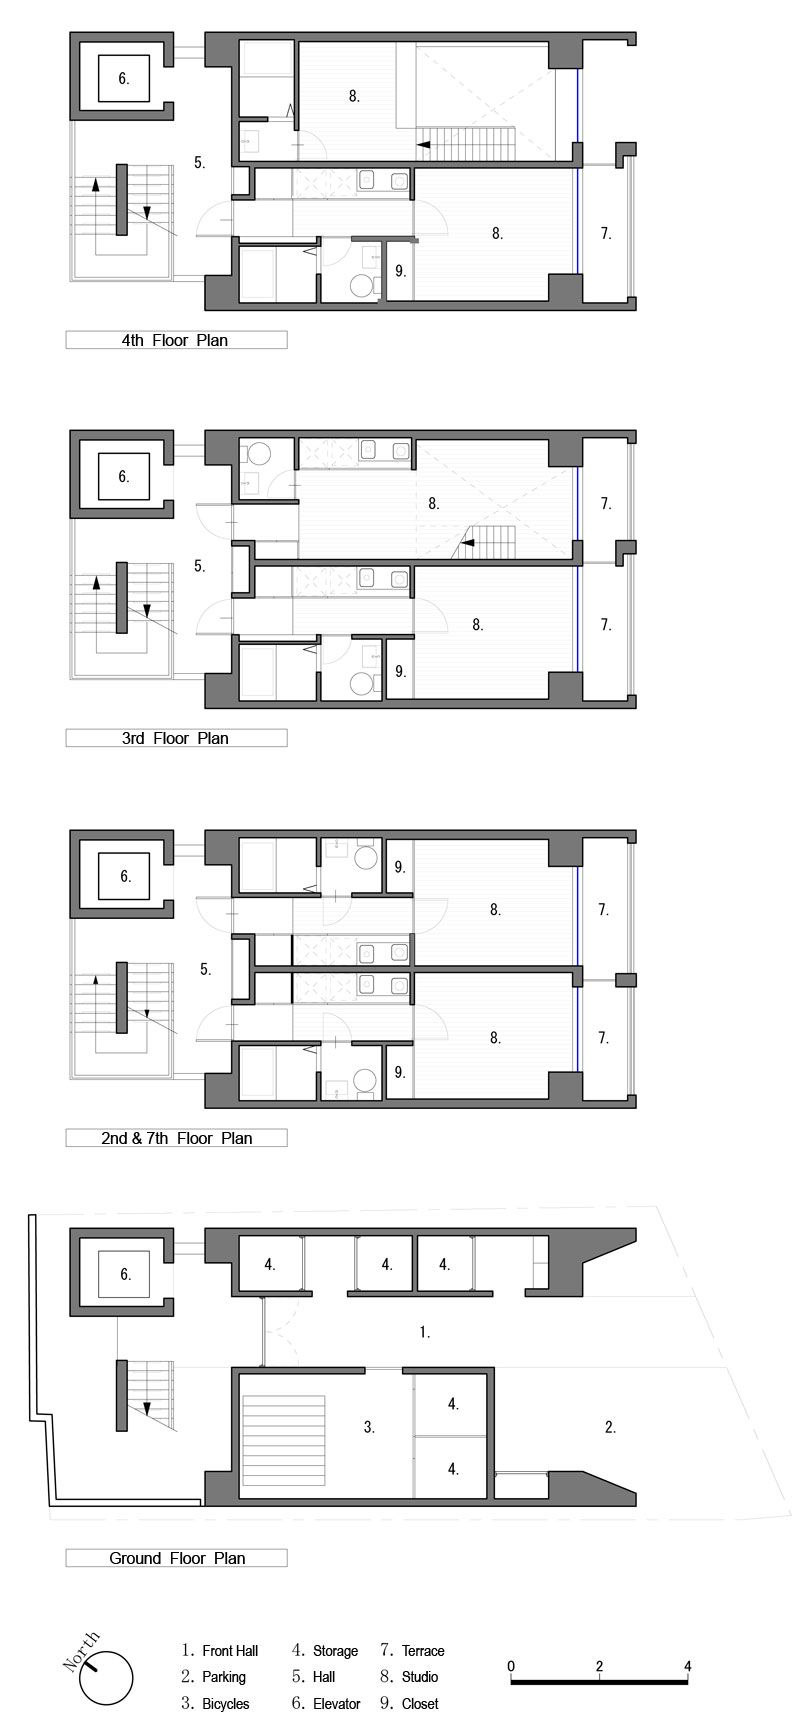 Apartment In Katayama Elevation Section And Floor Plans What We Do Is Secret Hotel Floor Plan House Plans With Pictures Floor Plans